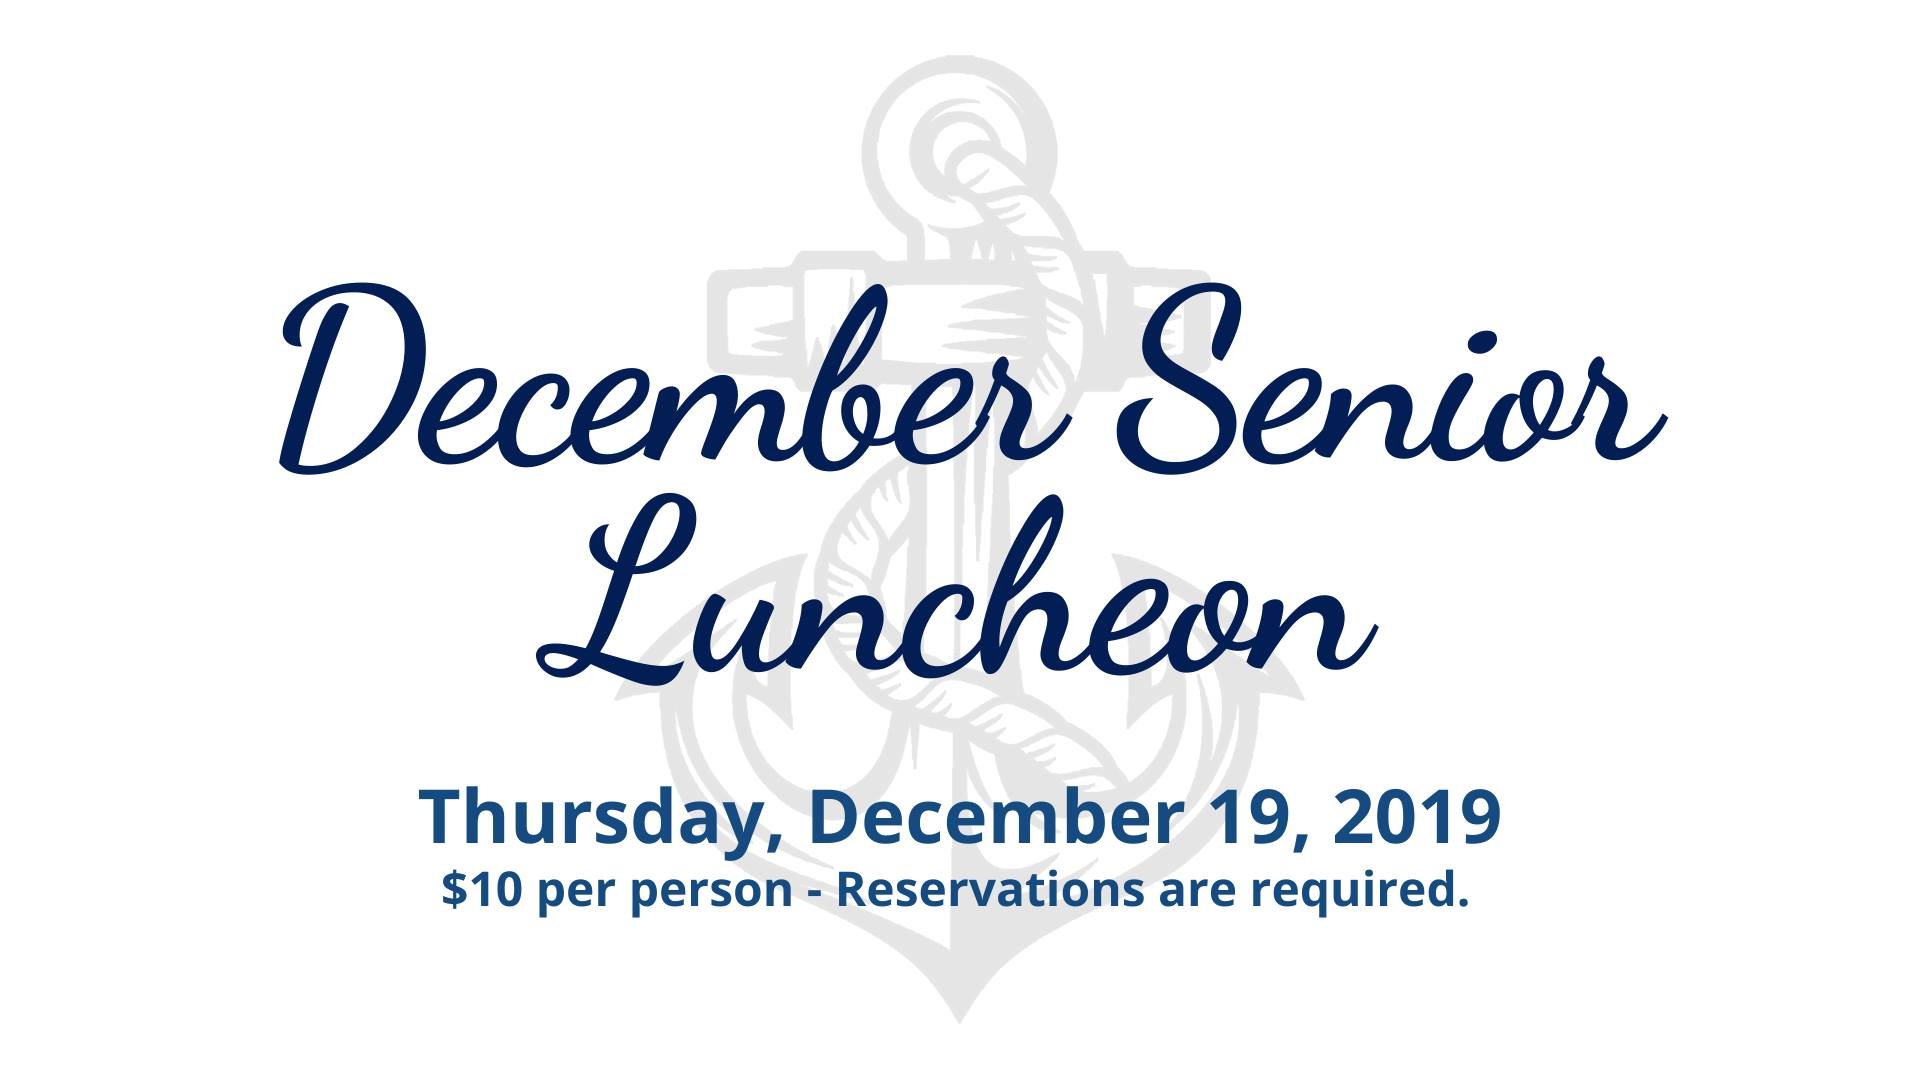 December Senior Luncheon in Fox Lake